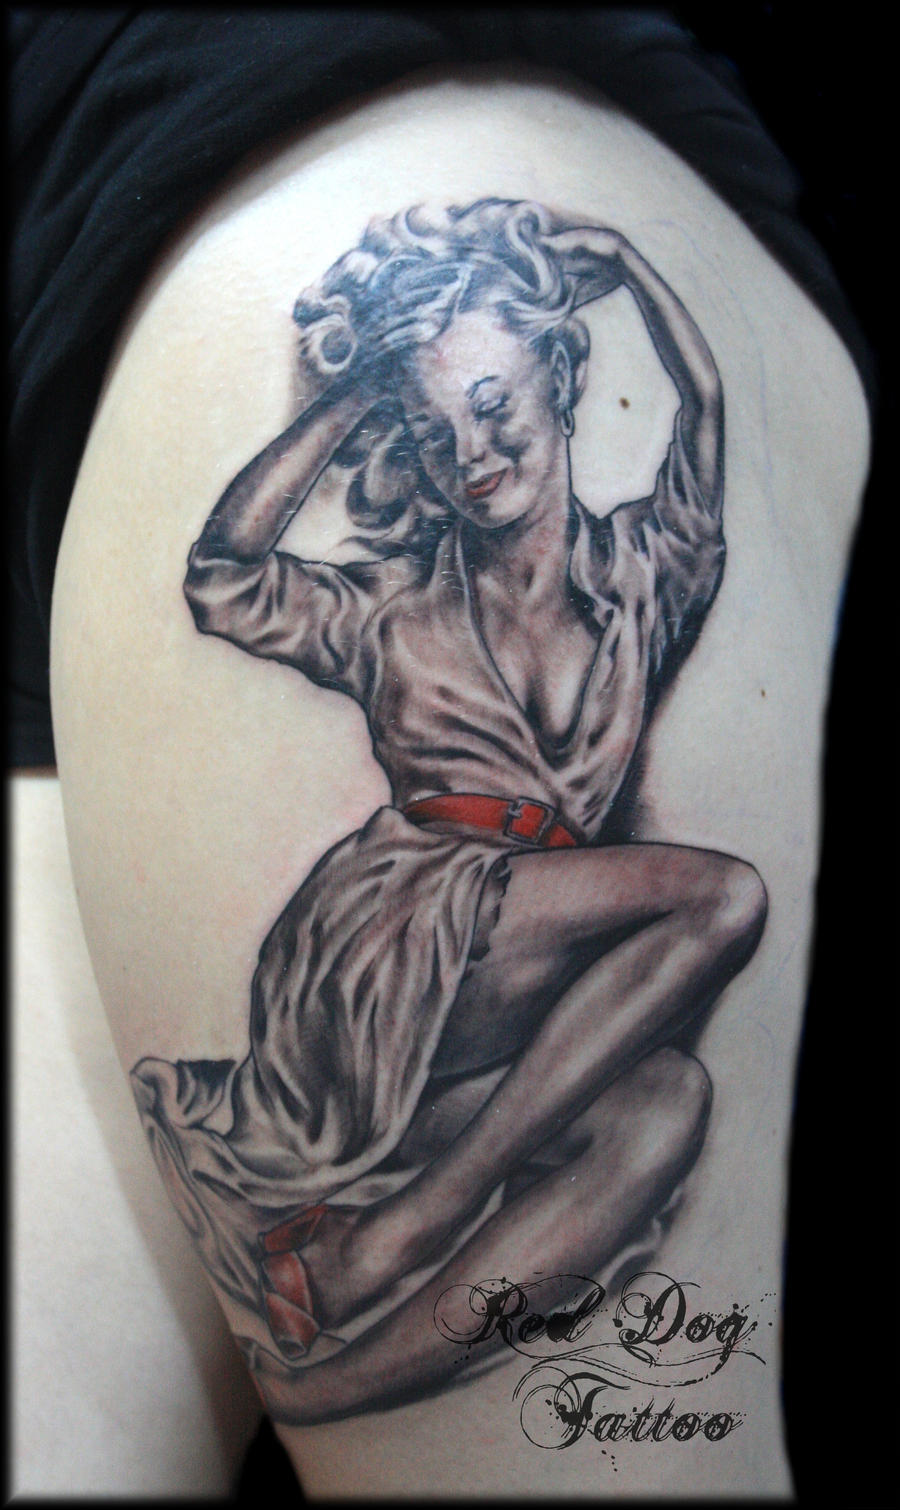 Sam's pinup by Reddogtattoo